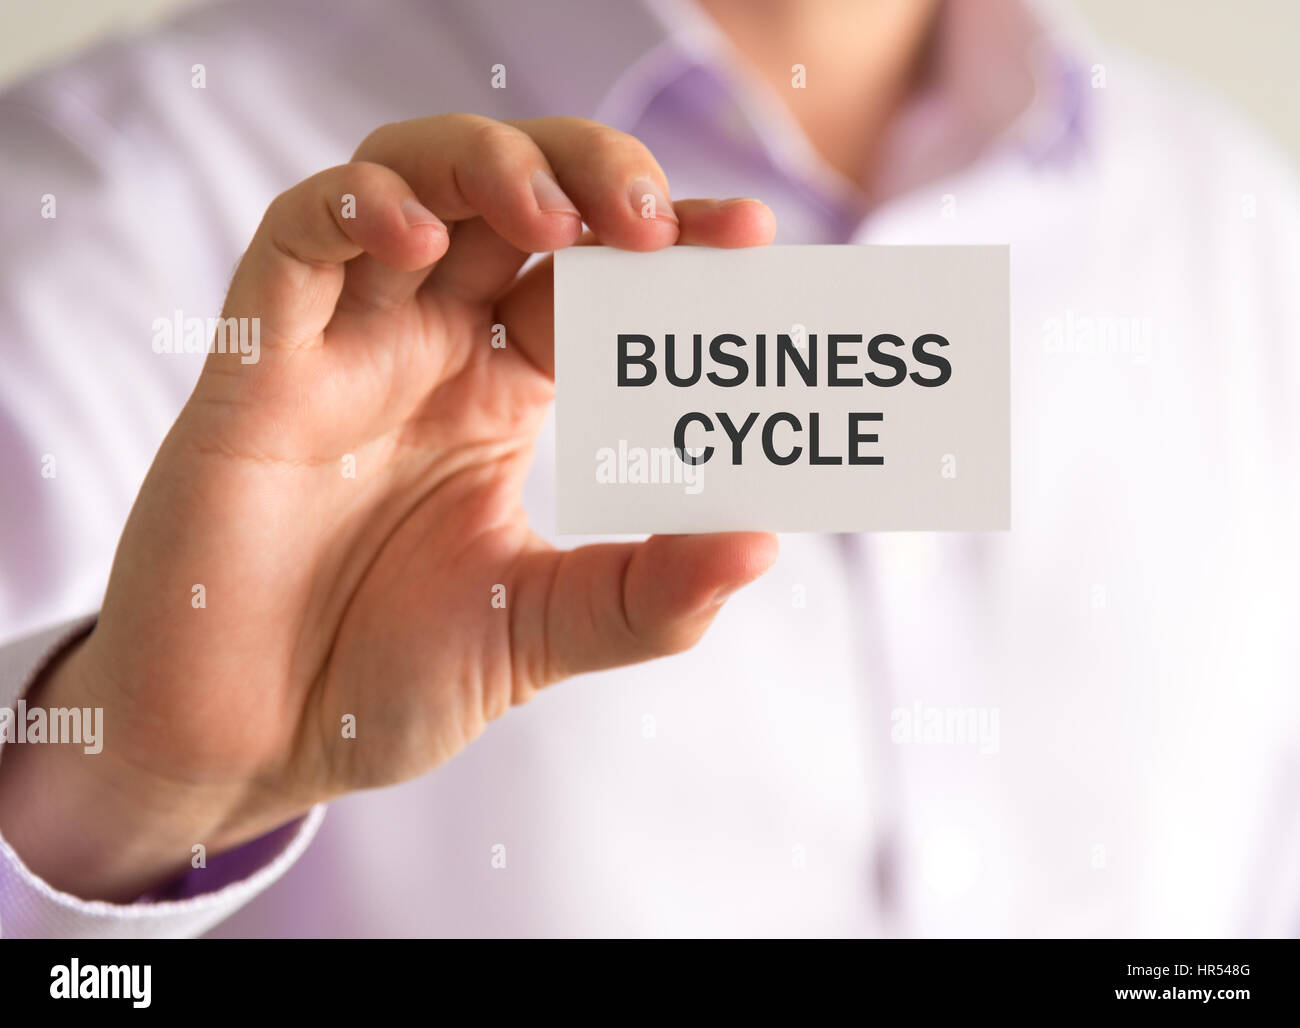 Closeup on businessman holding a card with BUSINESS CYCLE message, business concept image with soft focus background - Stock Image